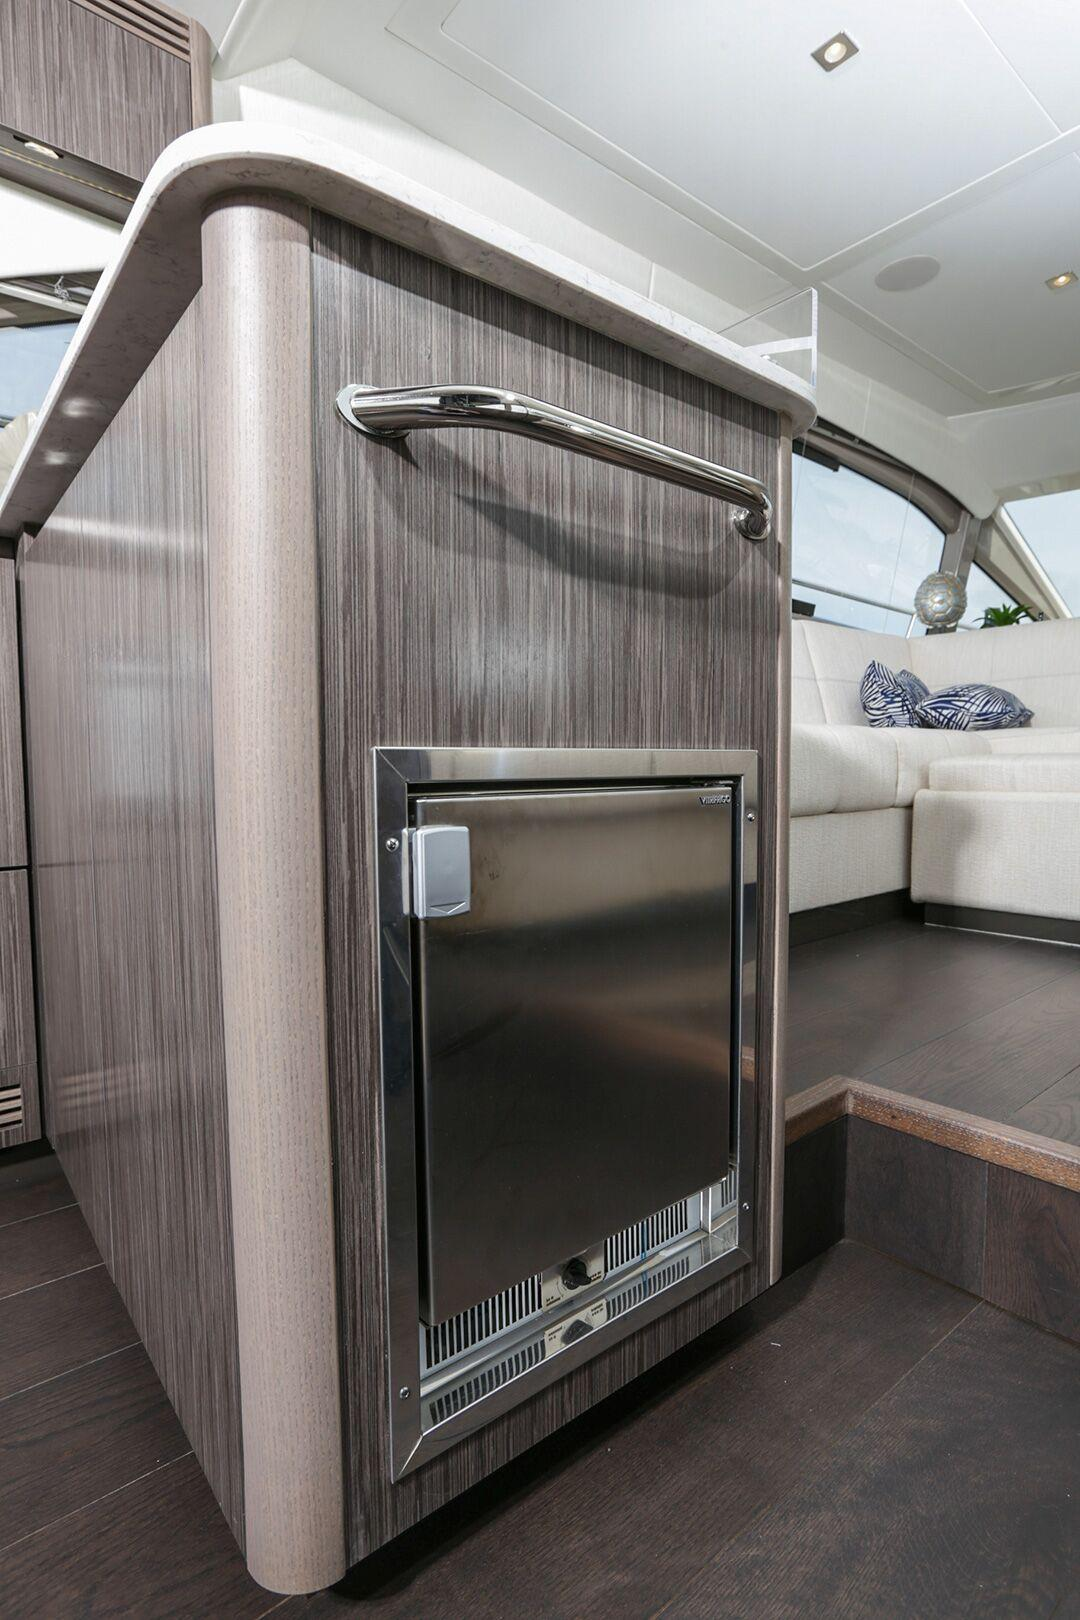 2018 Sea Ray Fly 460 #TB9051JHP inventory image at Sun Country Coastal in San Diego